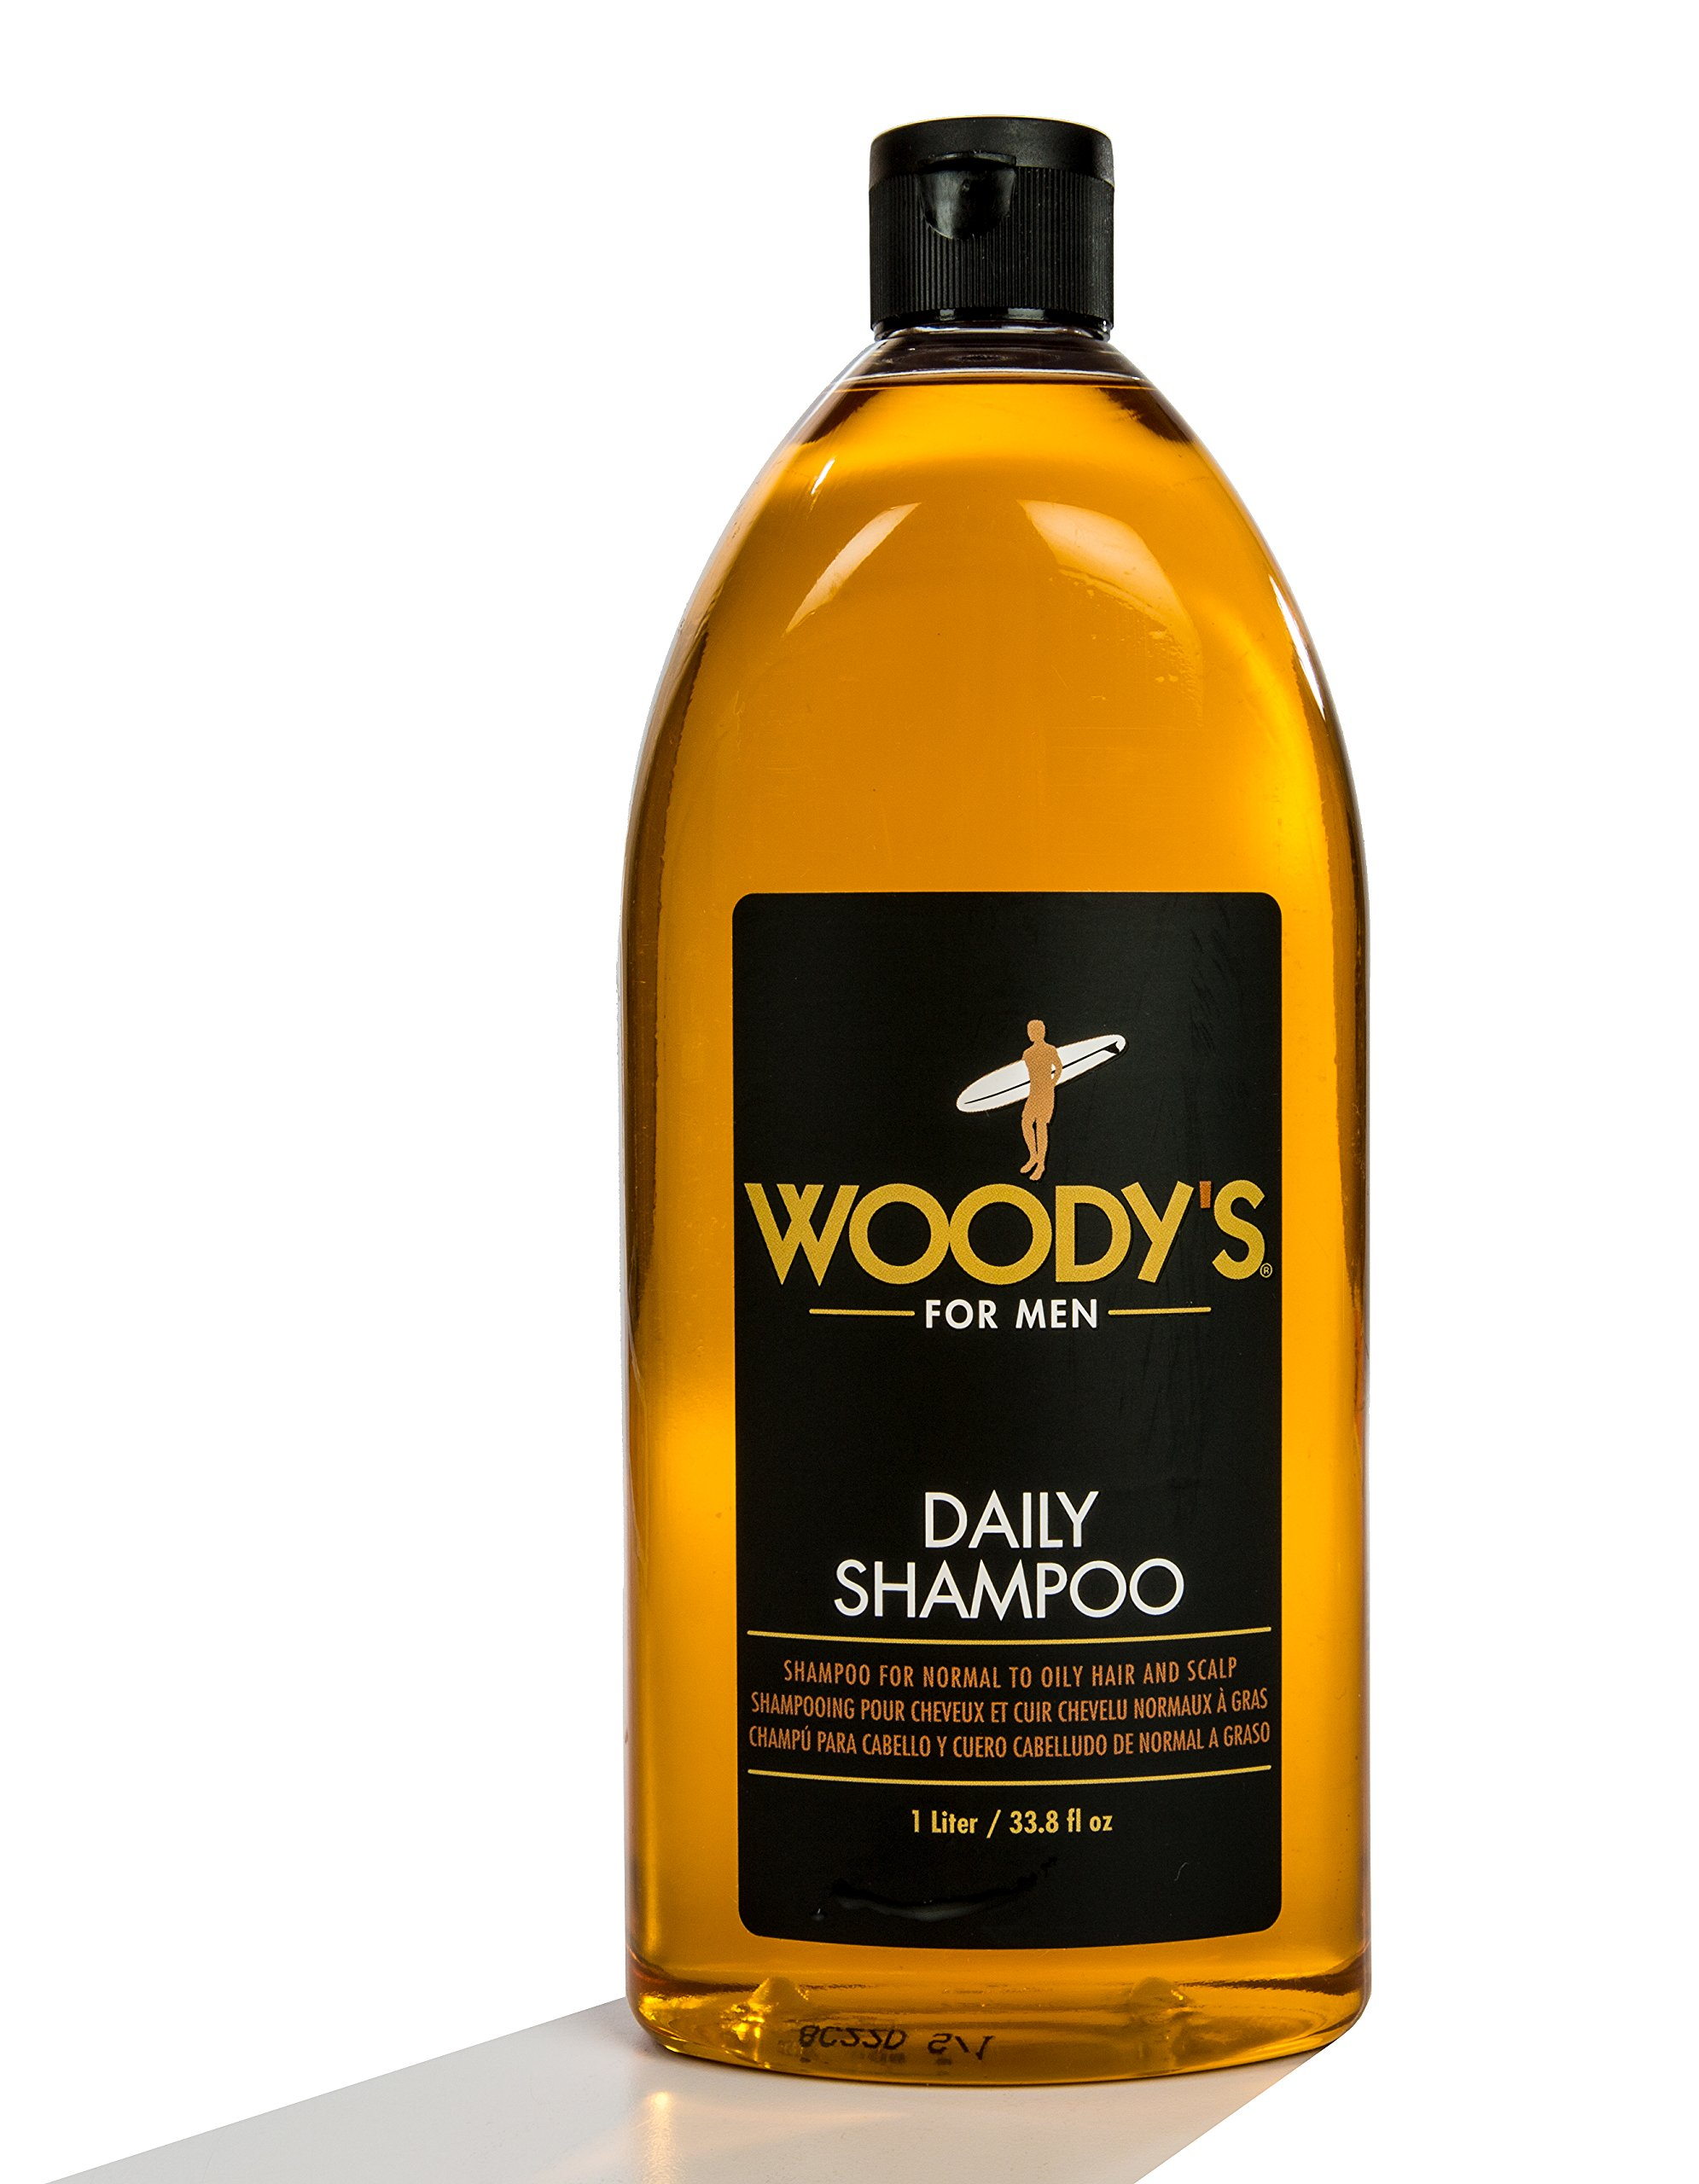 Woodys Daily Shampoo for Men, ...